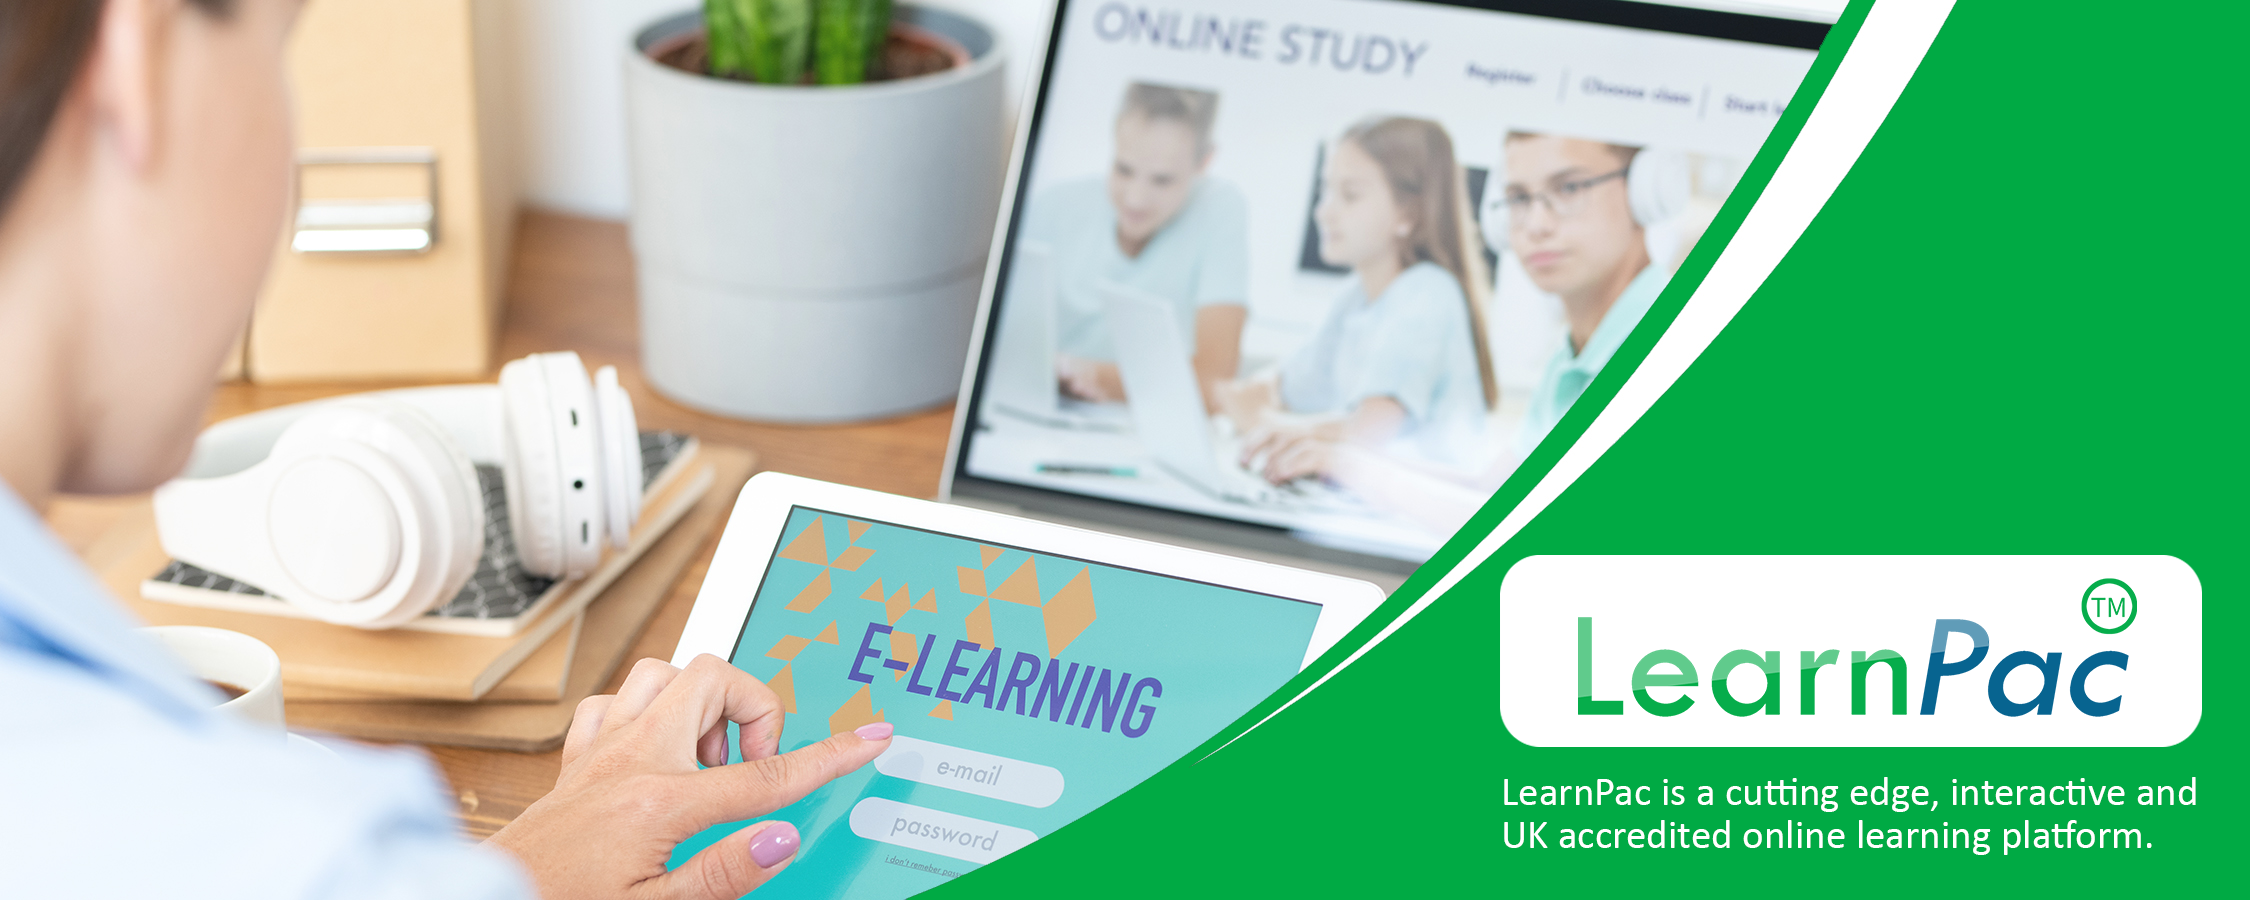 Health and Safety in Health and Care - E-Learning Courses - LearnPac Systems UK -